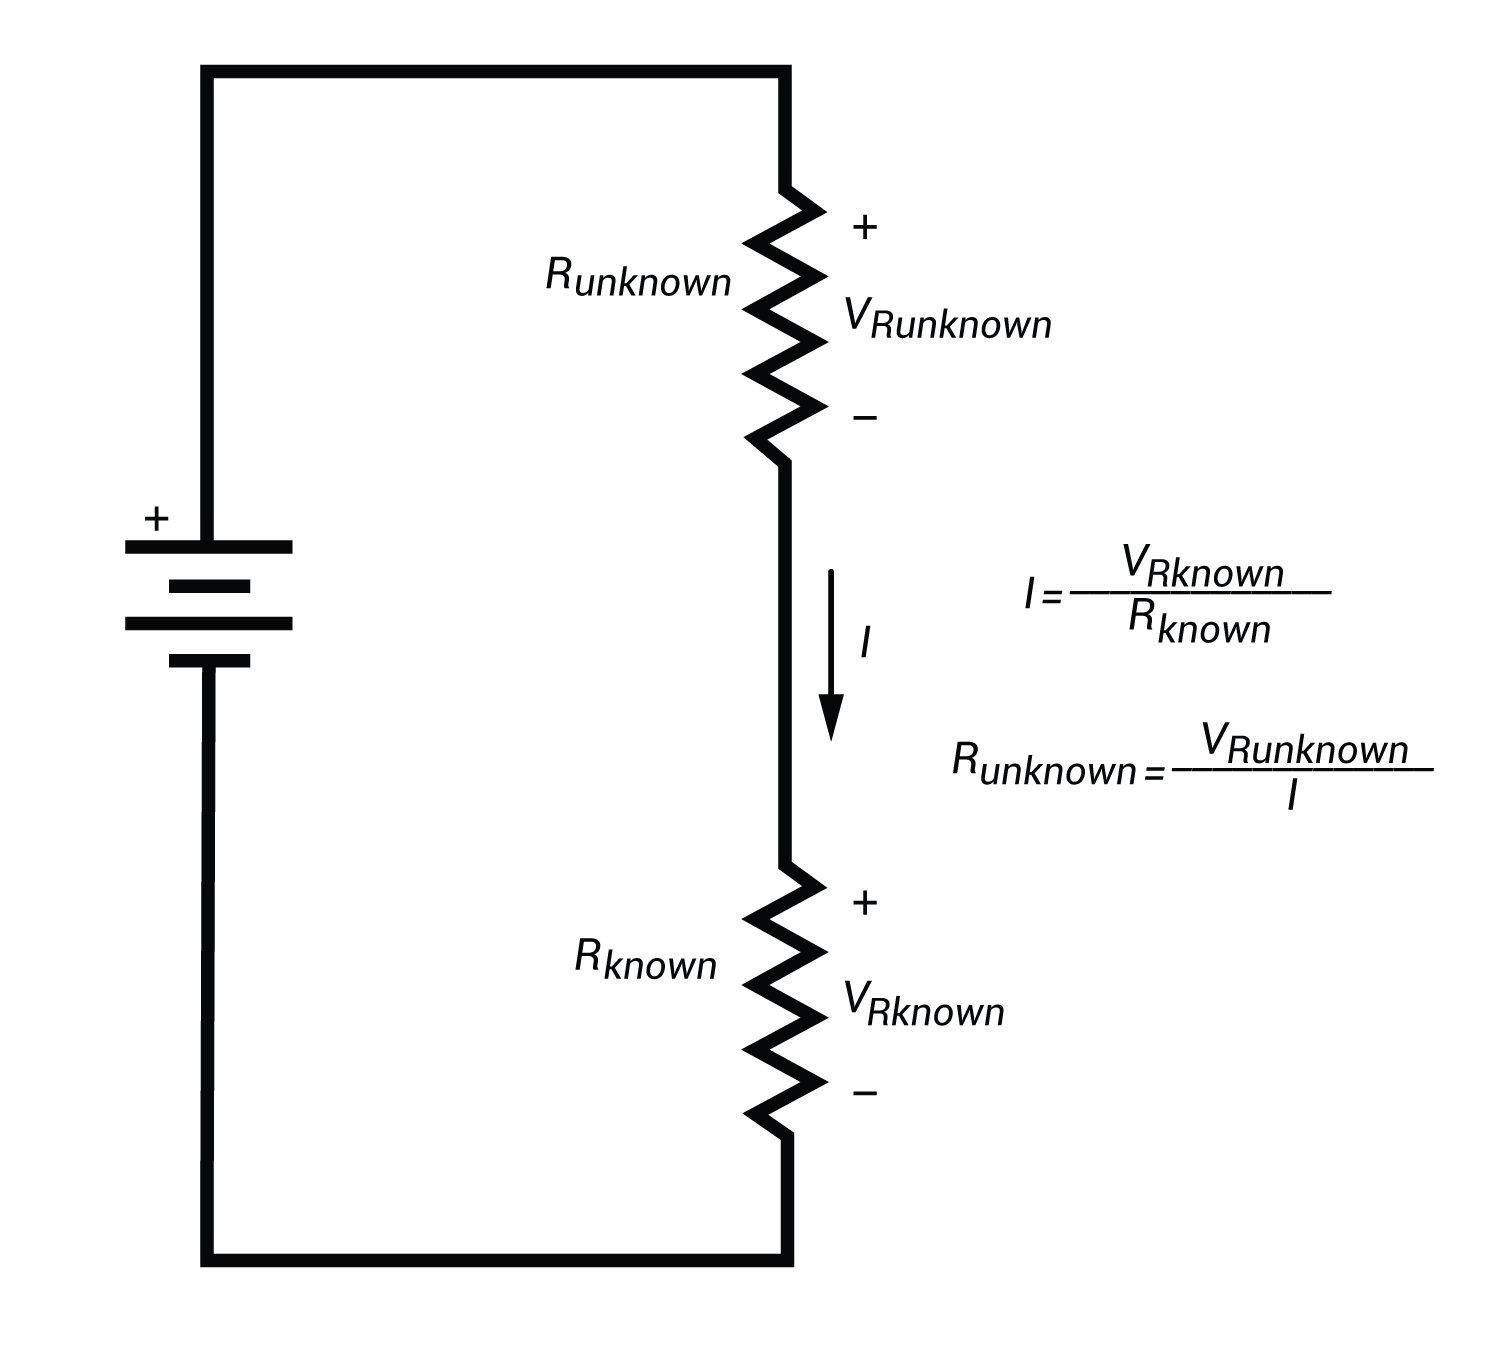 resistor circuit diagram pupil size measuring resistance in and out calculating unknown using ohm s law